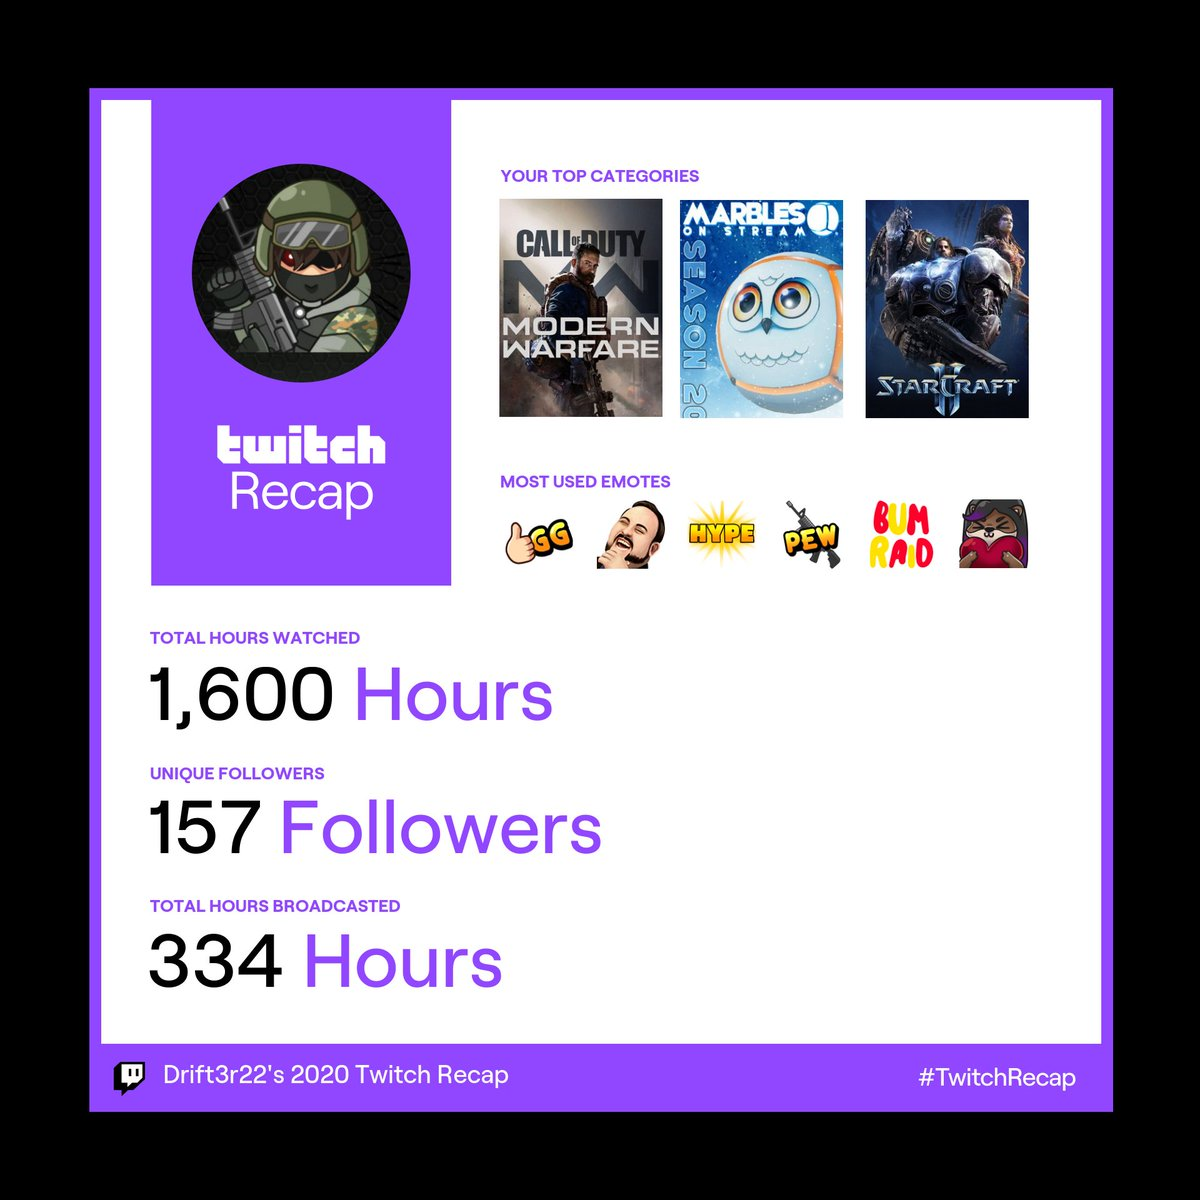 Drift3r22 - I know this isn't really big numbers but through the ups and downs of 202 I am standing proud! 😁 Recovered from Covid and slowly building up my stream again.  a BIG thank you to the friendly community and all the support I got!  #ZAStreams #twitchstreamer #Thankful